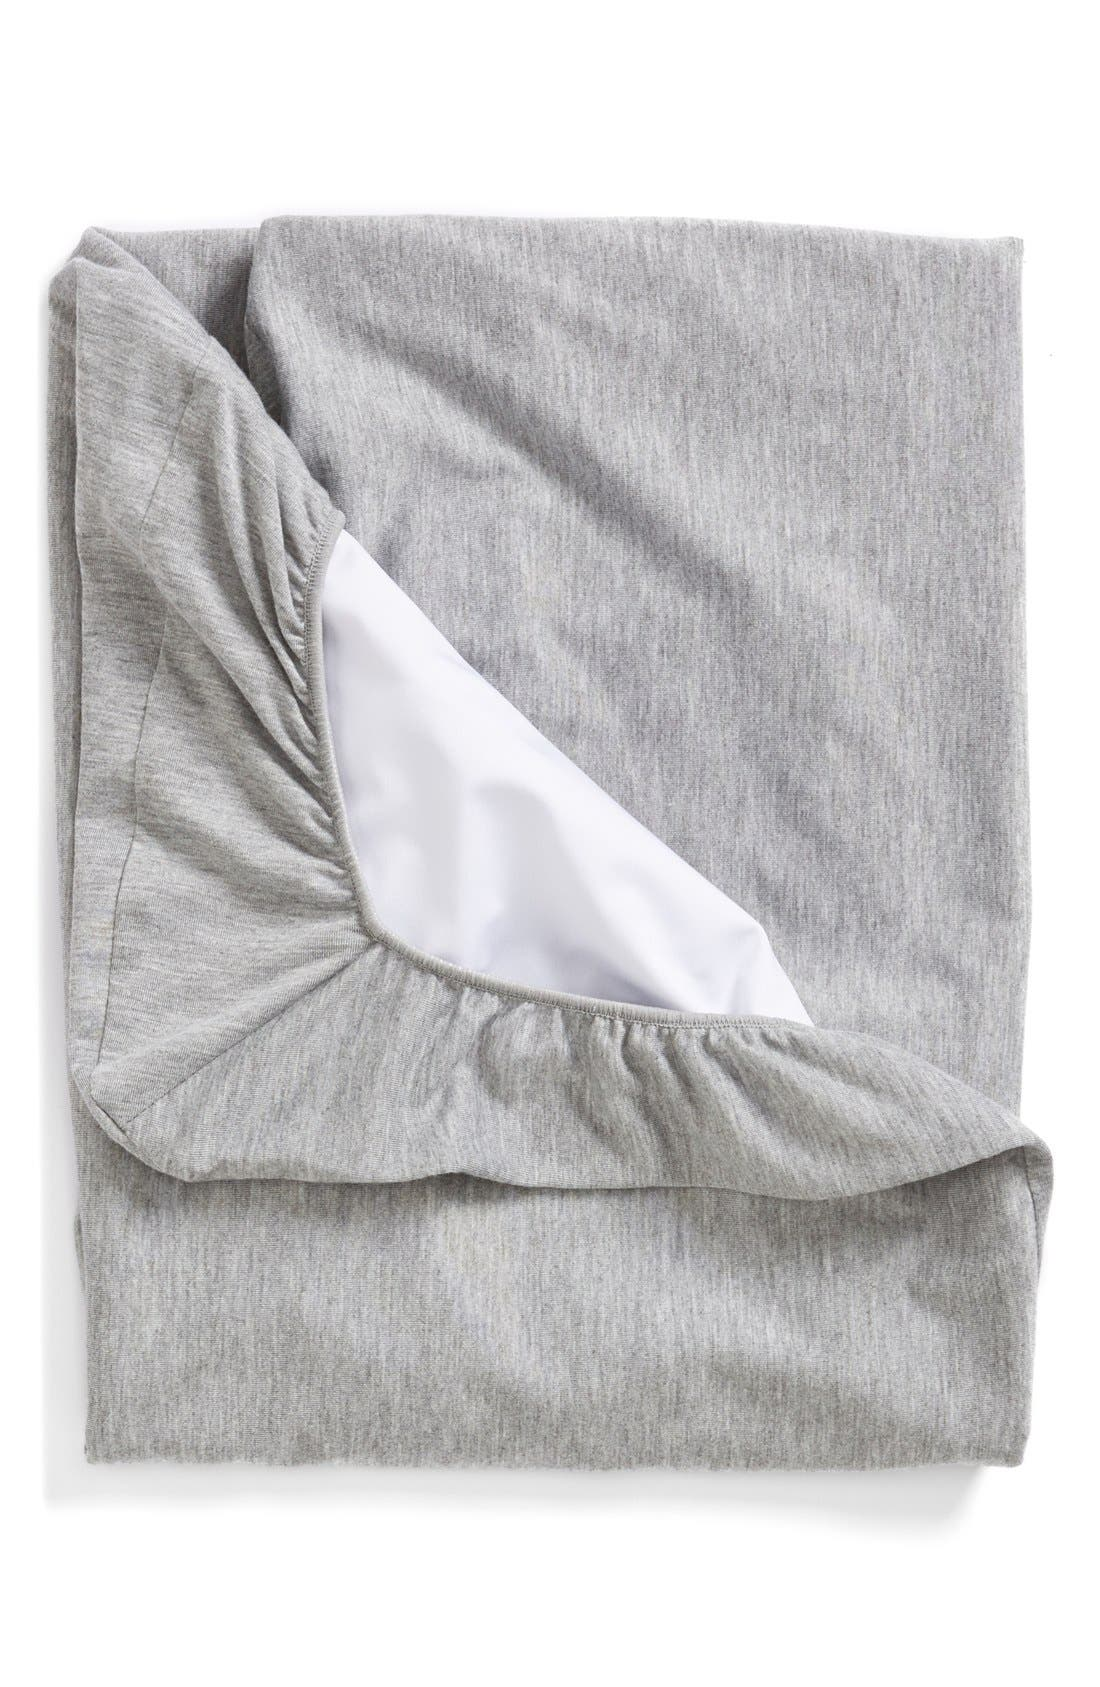 'SENA<sup>™</sup> mini' Waterproof Fitted Sheet,                             Alternate thumbnail 2, color,                             020